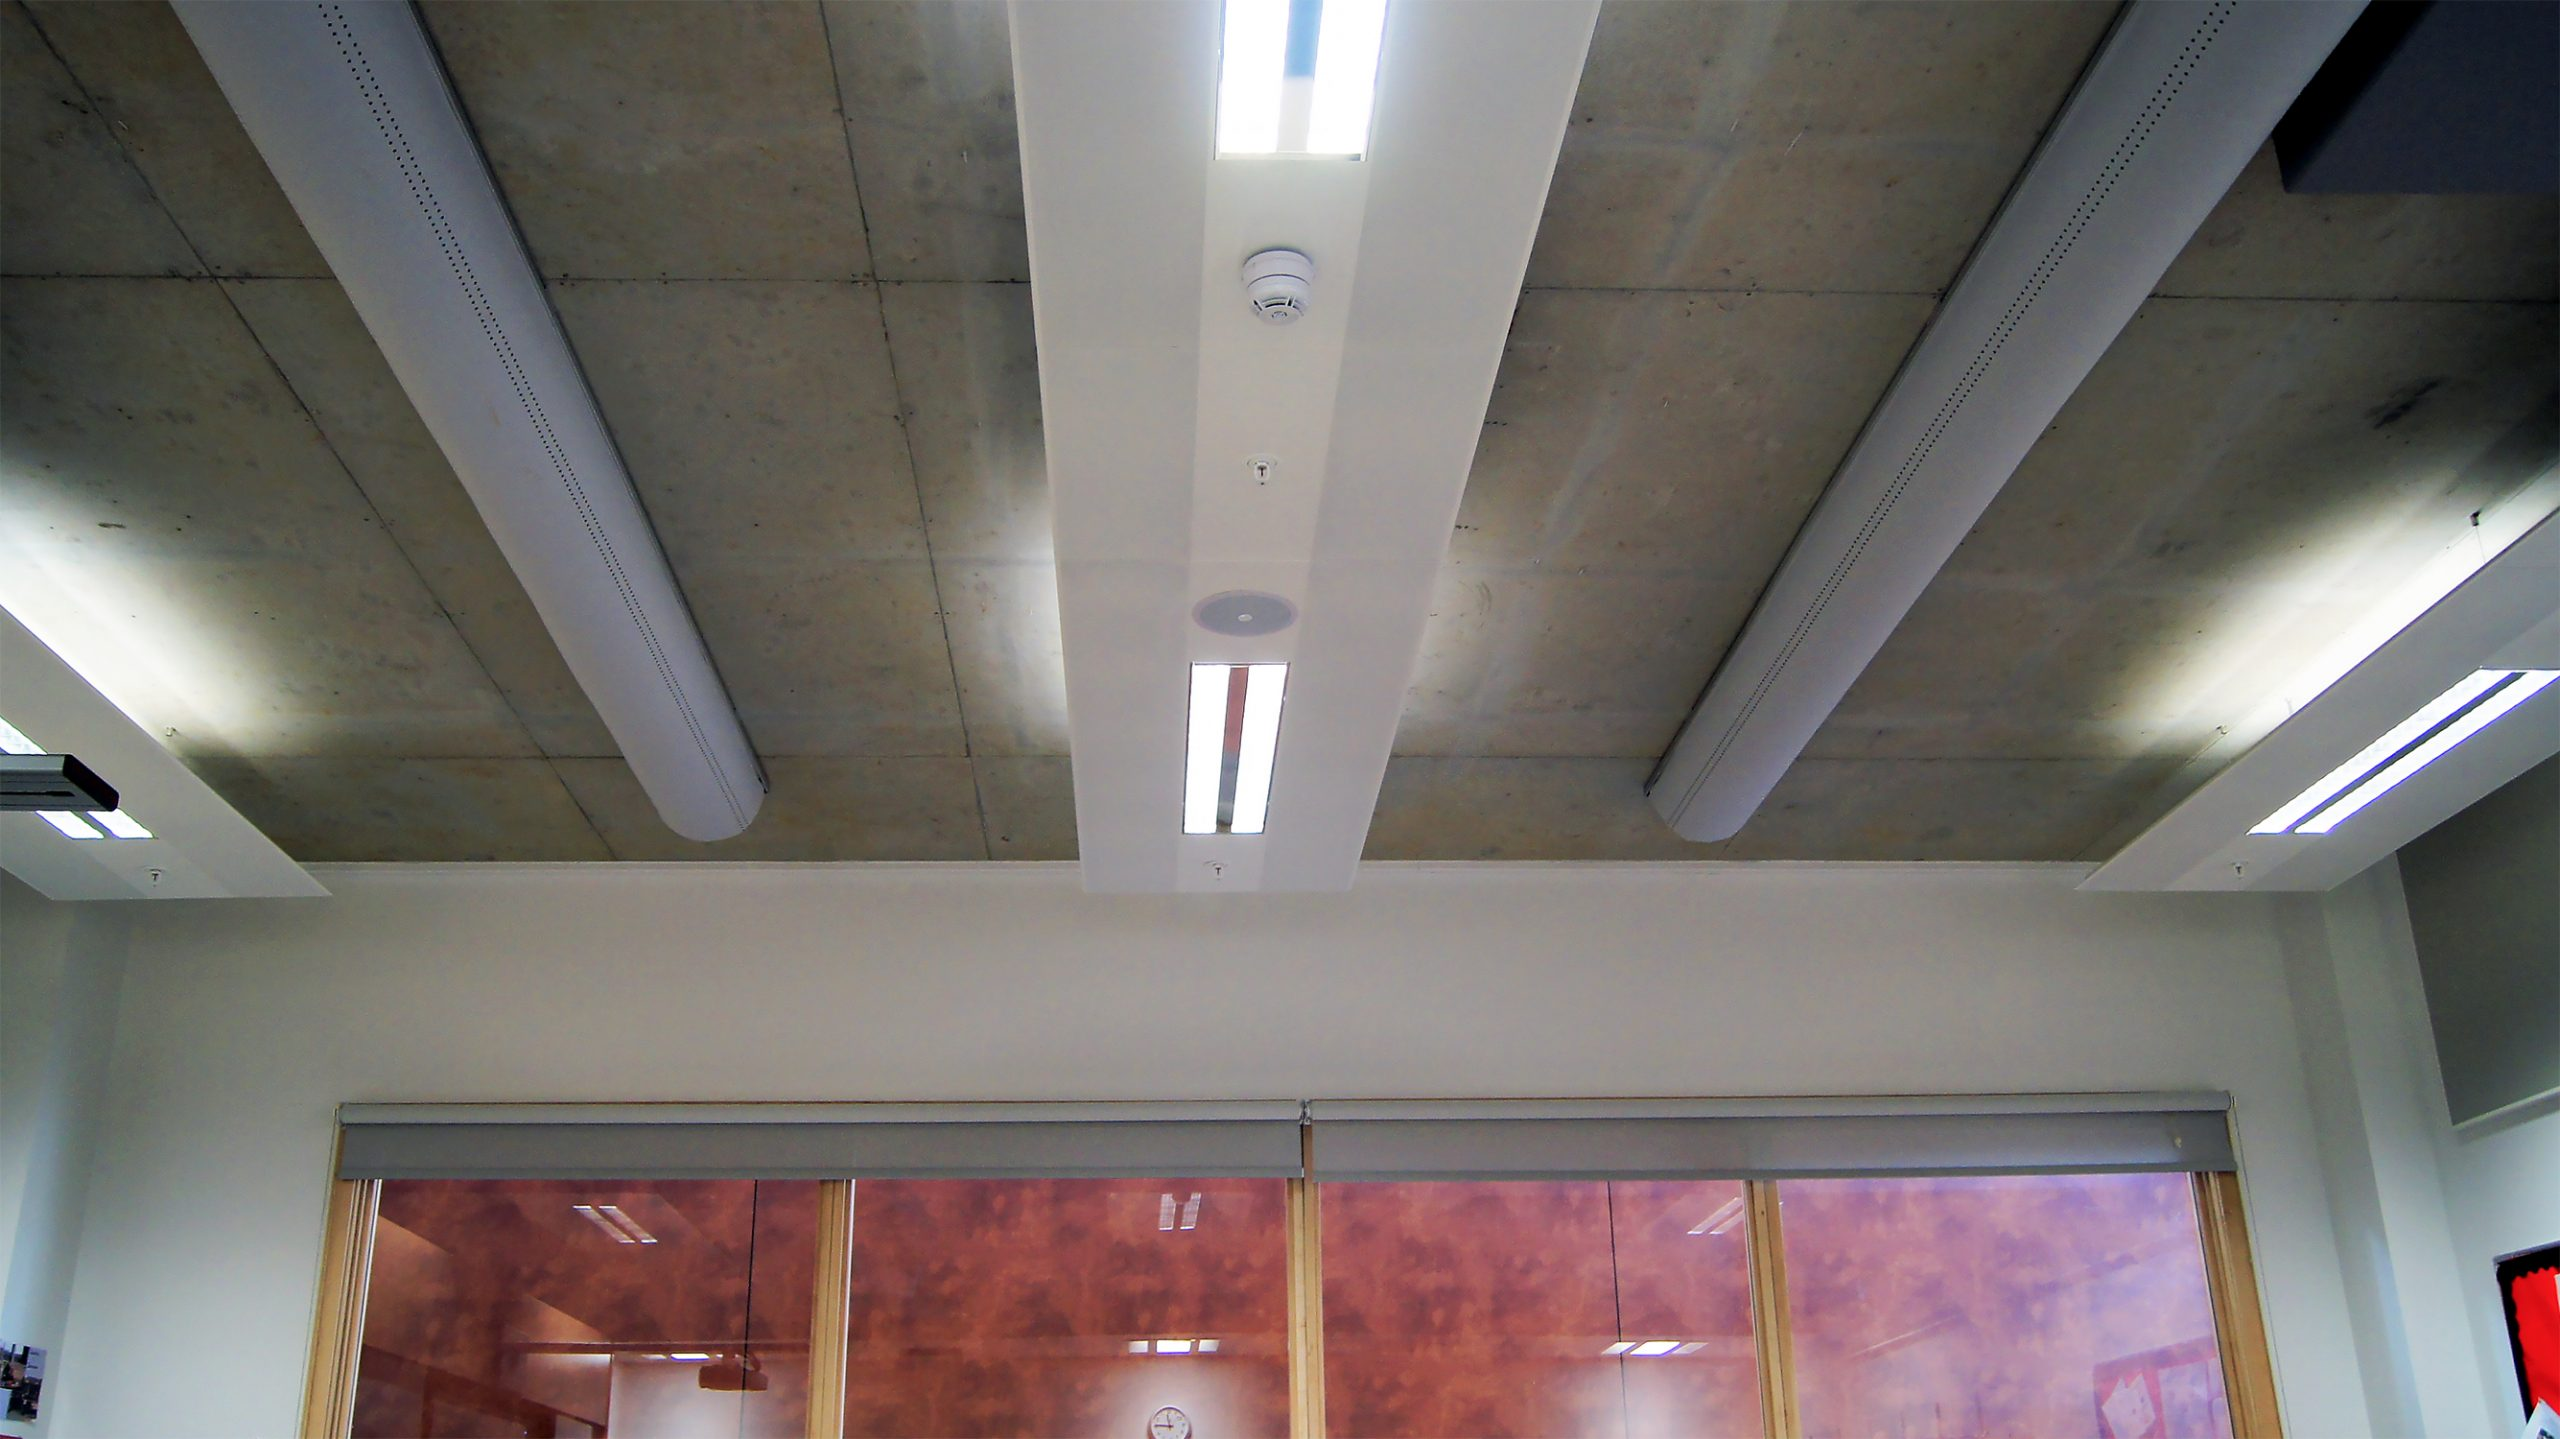 Half round fabric ducts installed on exposed concrete ceiling